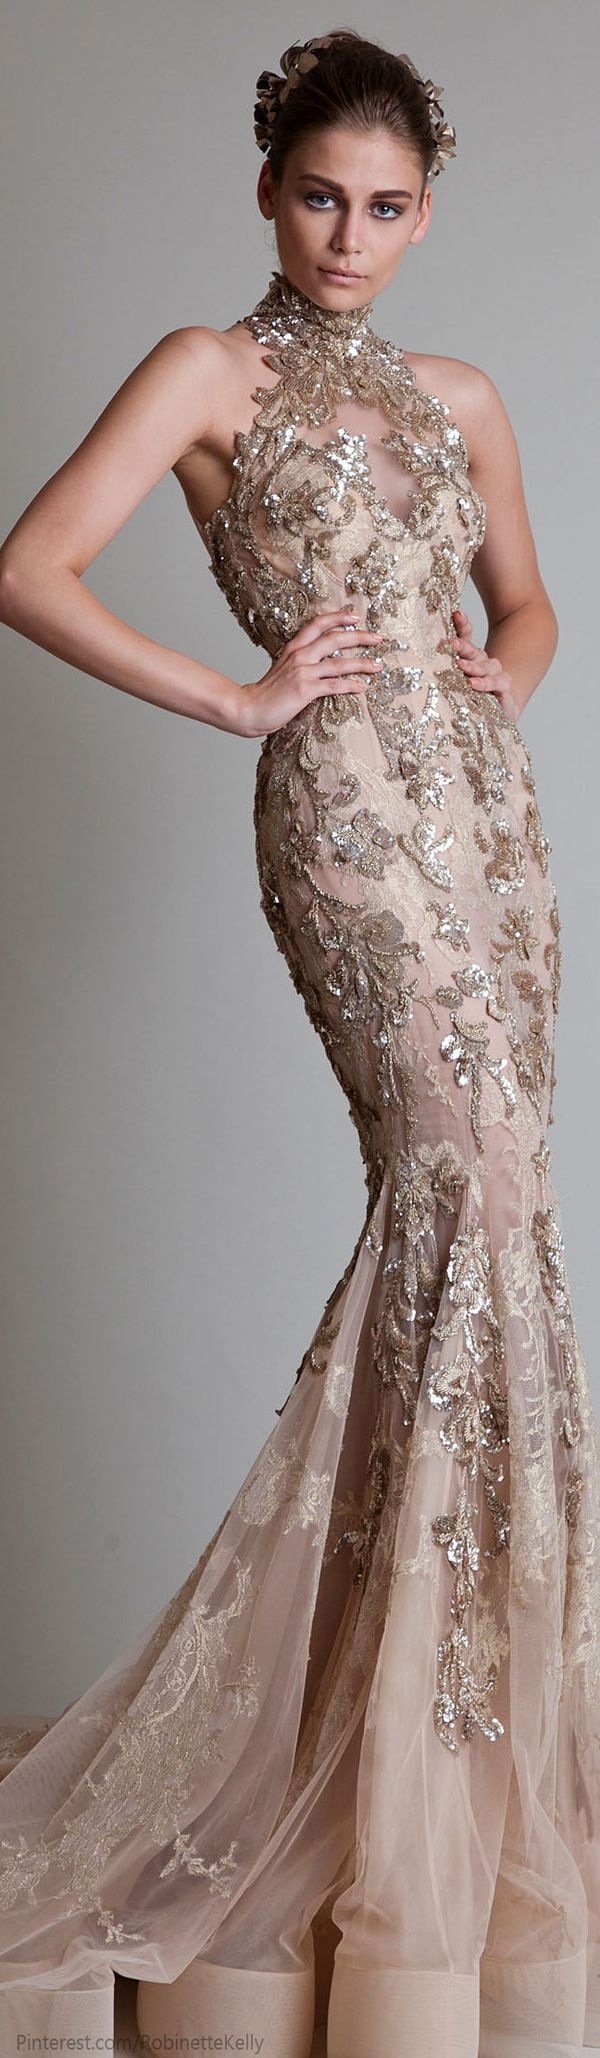 """Krikor Jabotian ● couture 2014 #gowns,✮✮Feel free to share on Pinterest"""" ♥ღ www.FASHIONANDCLOTHINGBLOG.COM"""